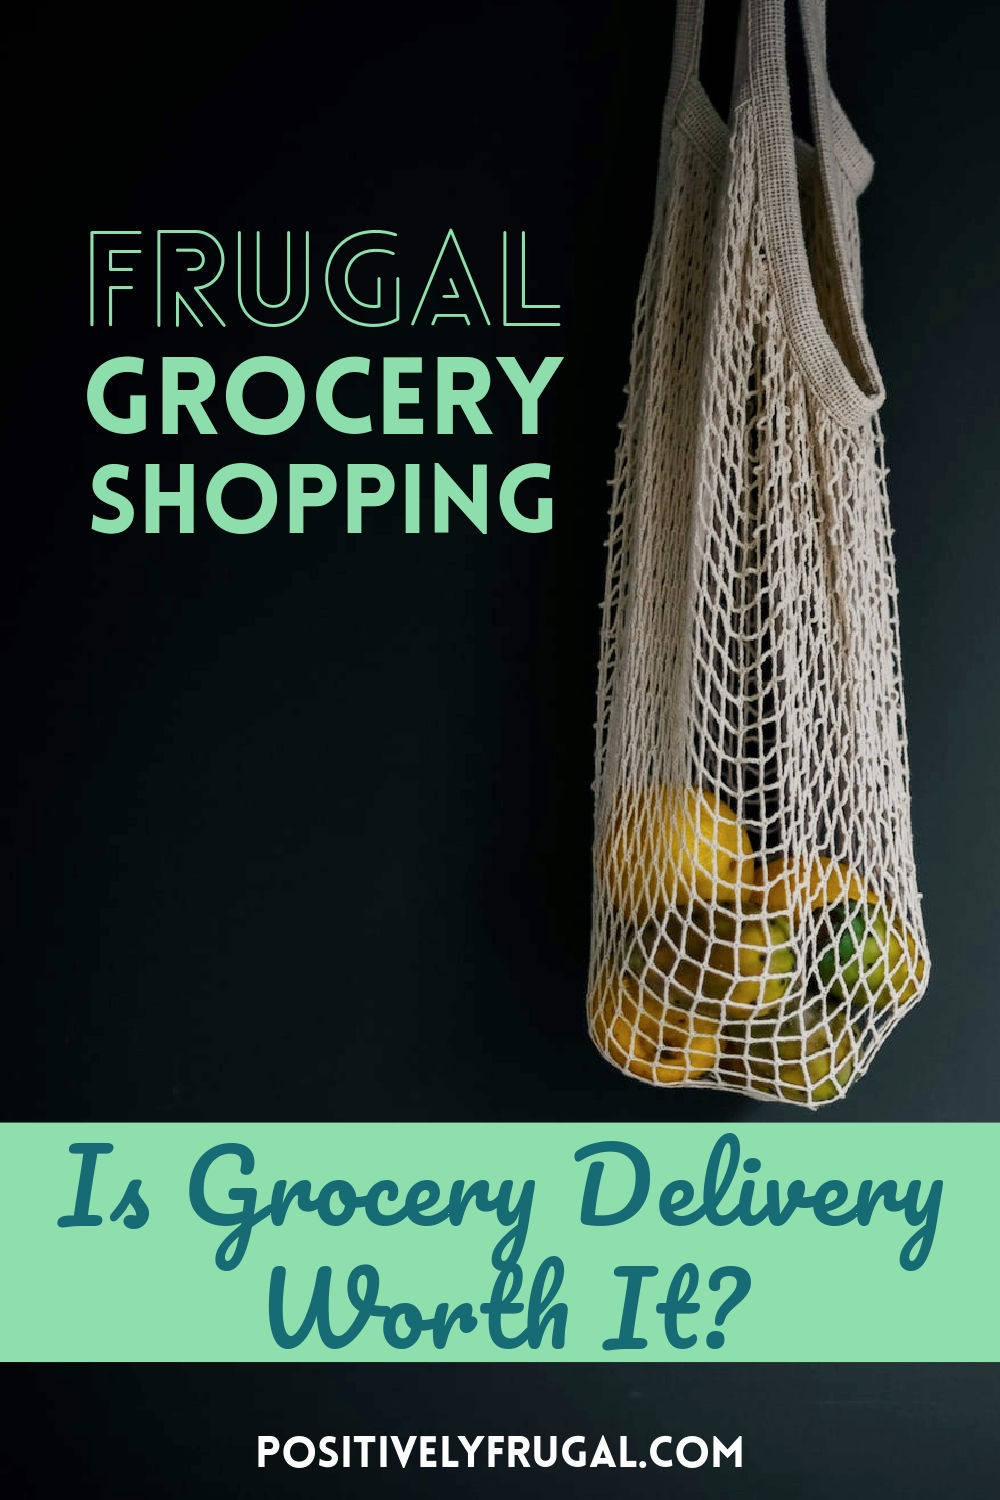 Is Grocery Delivery Worth It Frugal Grocery Shopping by PositivelyFrugal.com